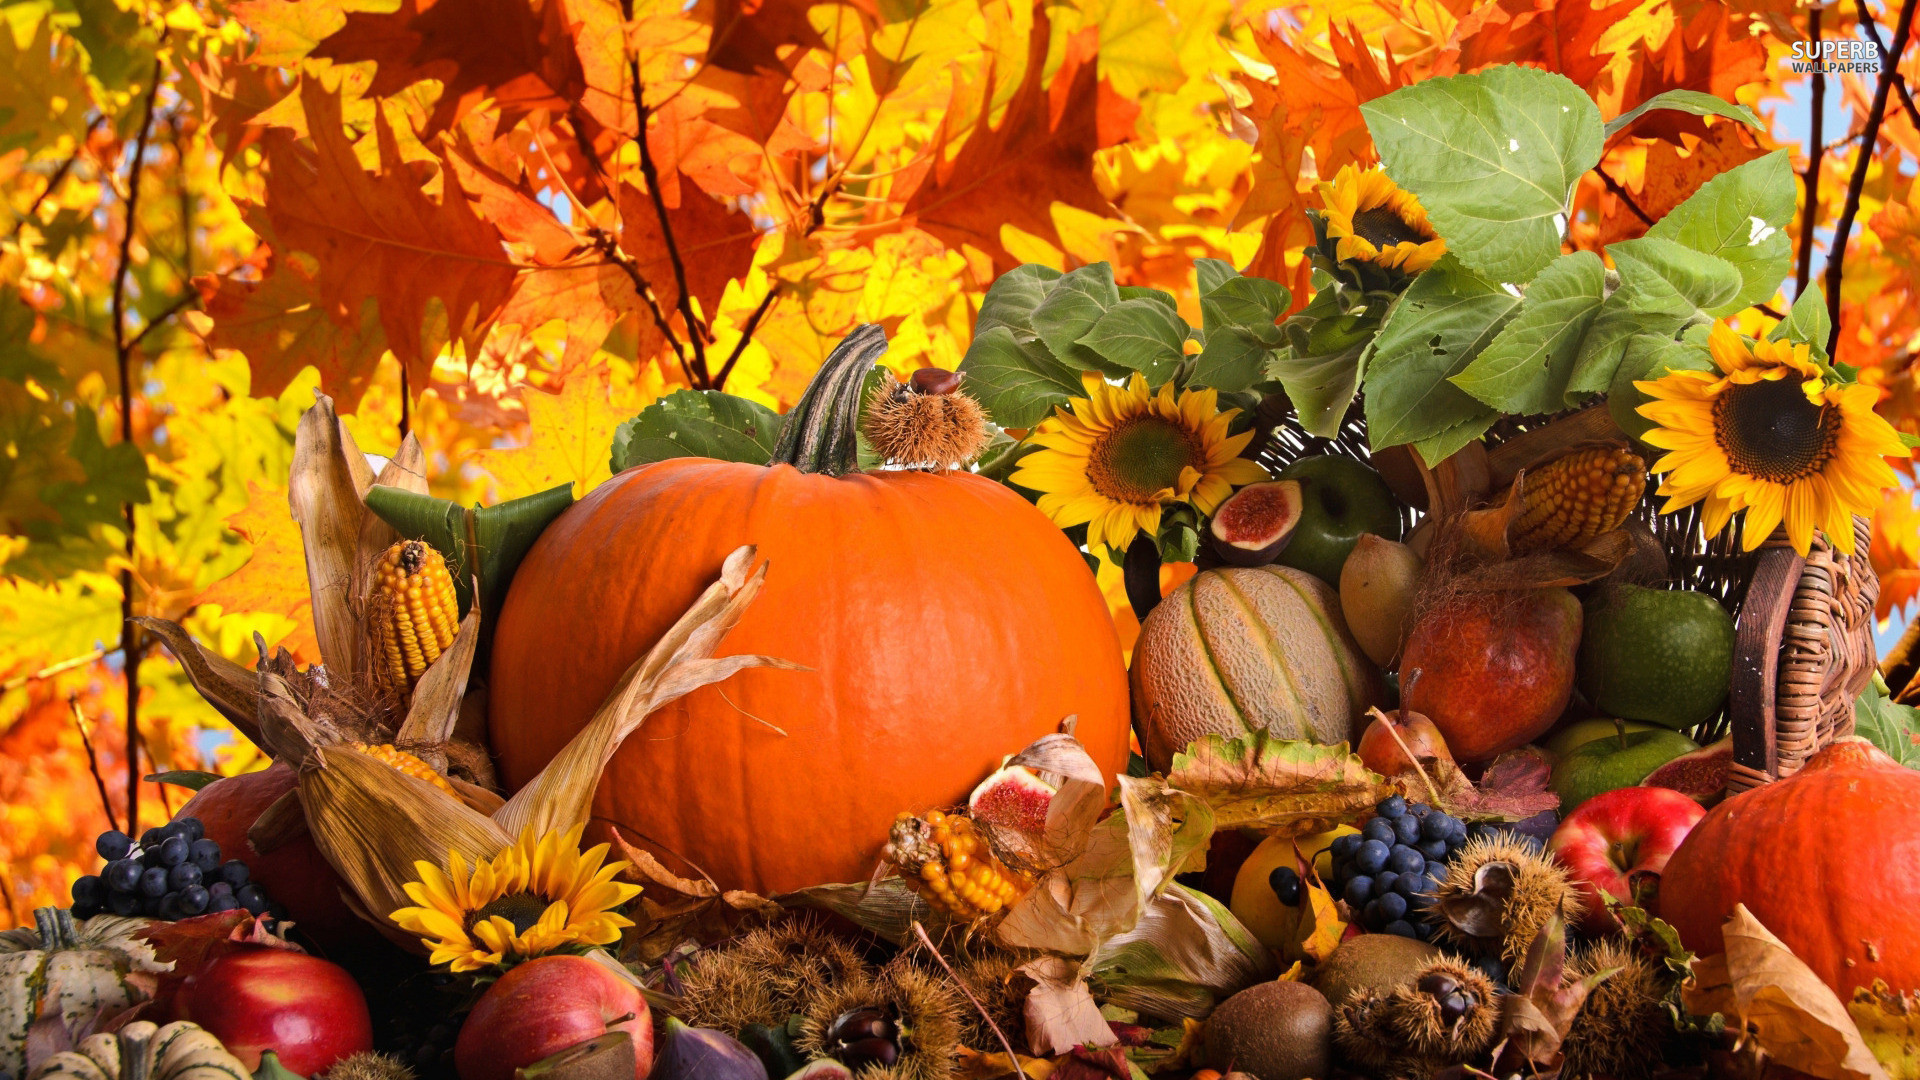 Autumn Images Backgrounds (25 Wallpapers)